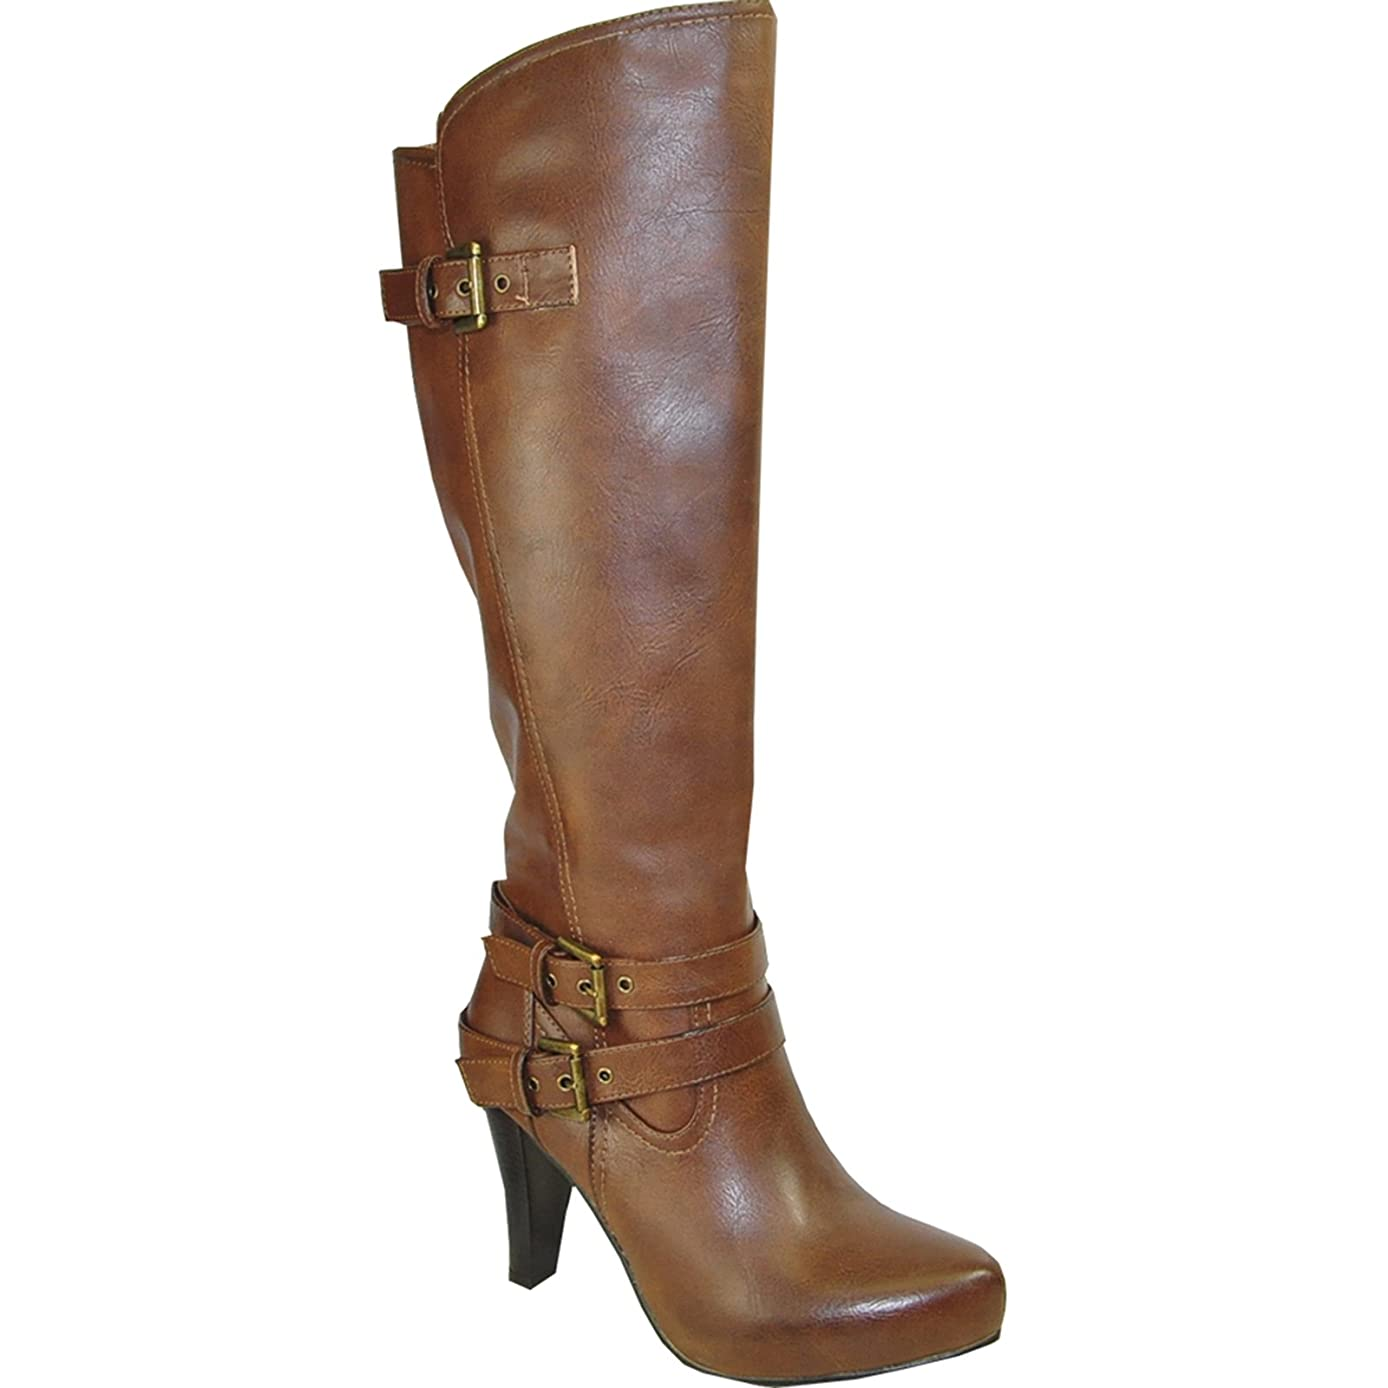 VANGELO Women's Dress Boots SD4401 Fashion Heel Boots with an Almond Toe